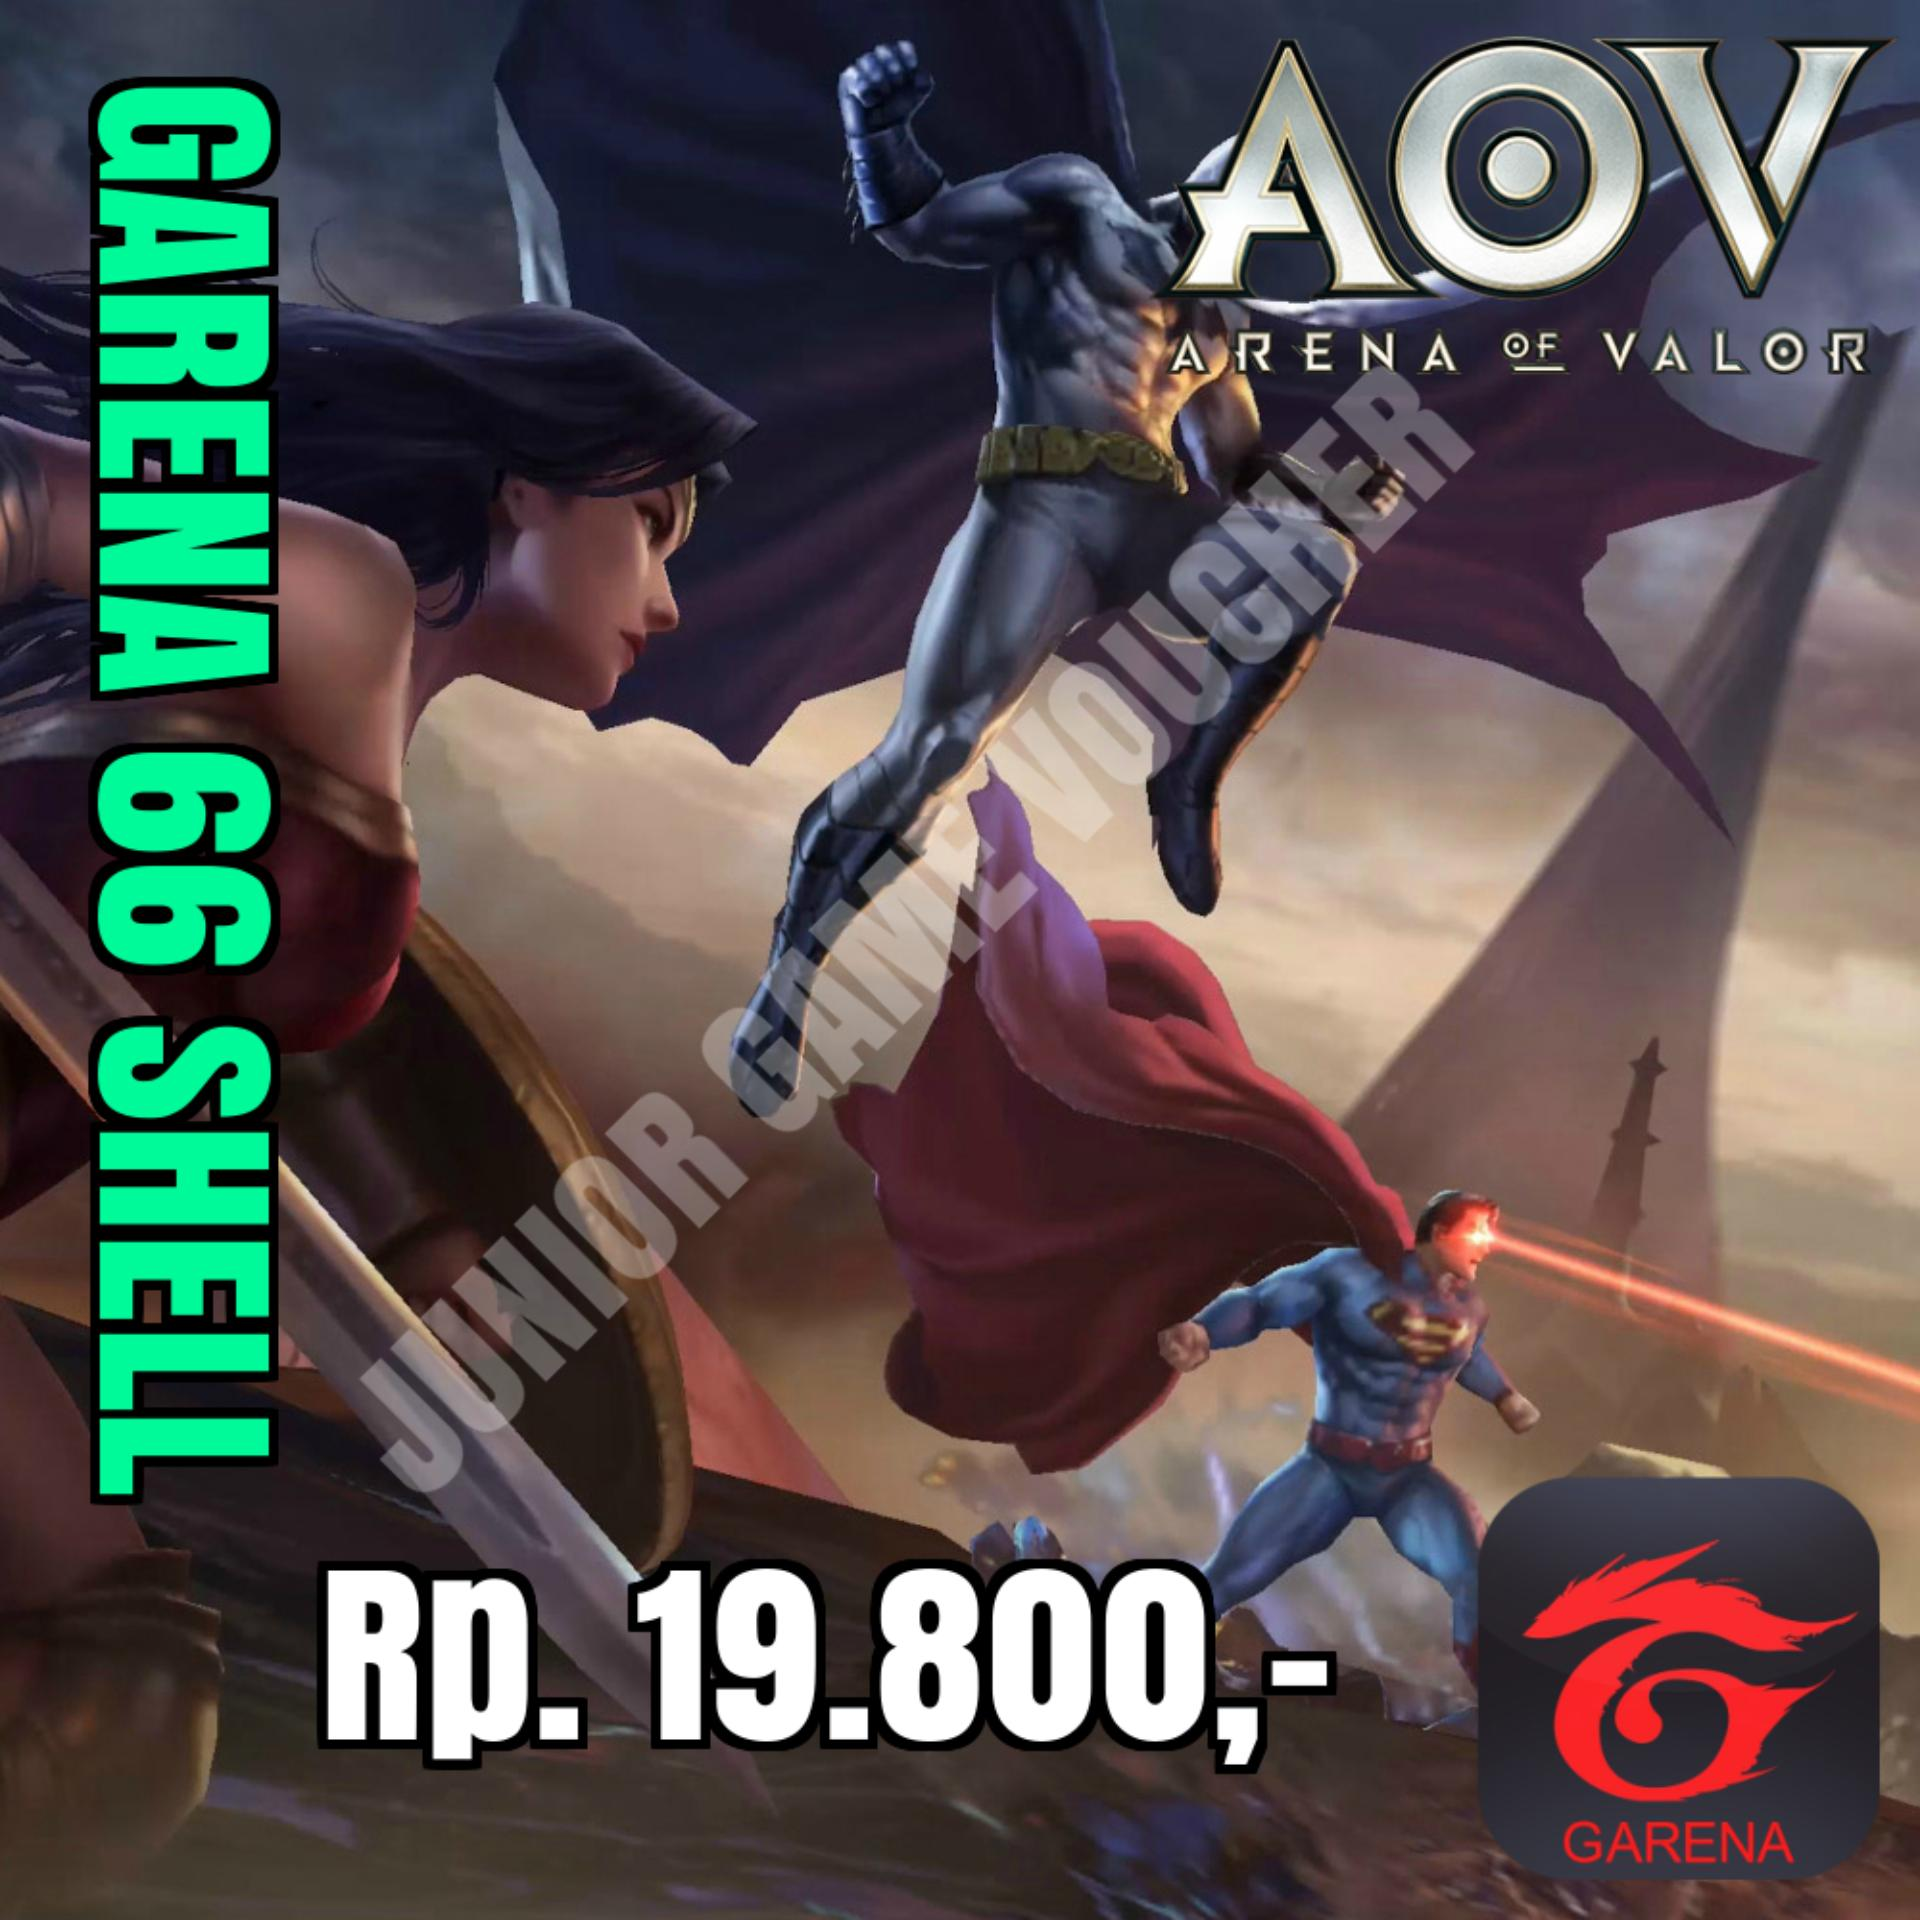 Buy Sell Cheapest Garena Shell 165 Best Quality Product Deals 500000 66 Support Aov Digital Code